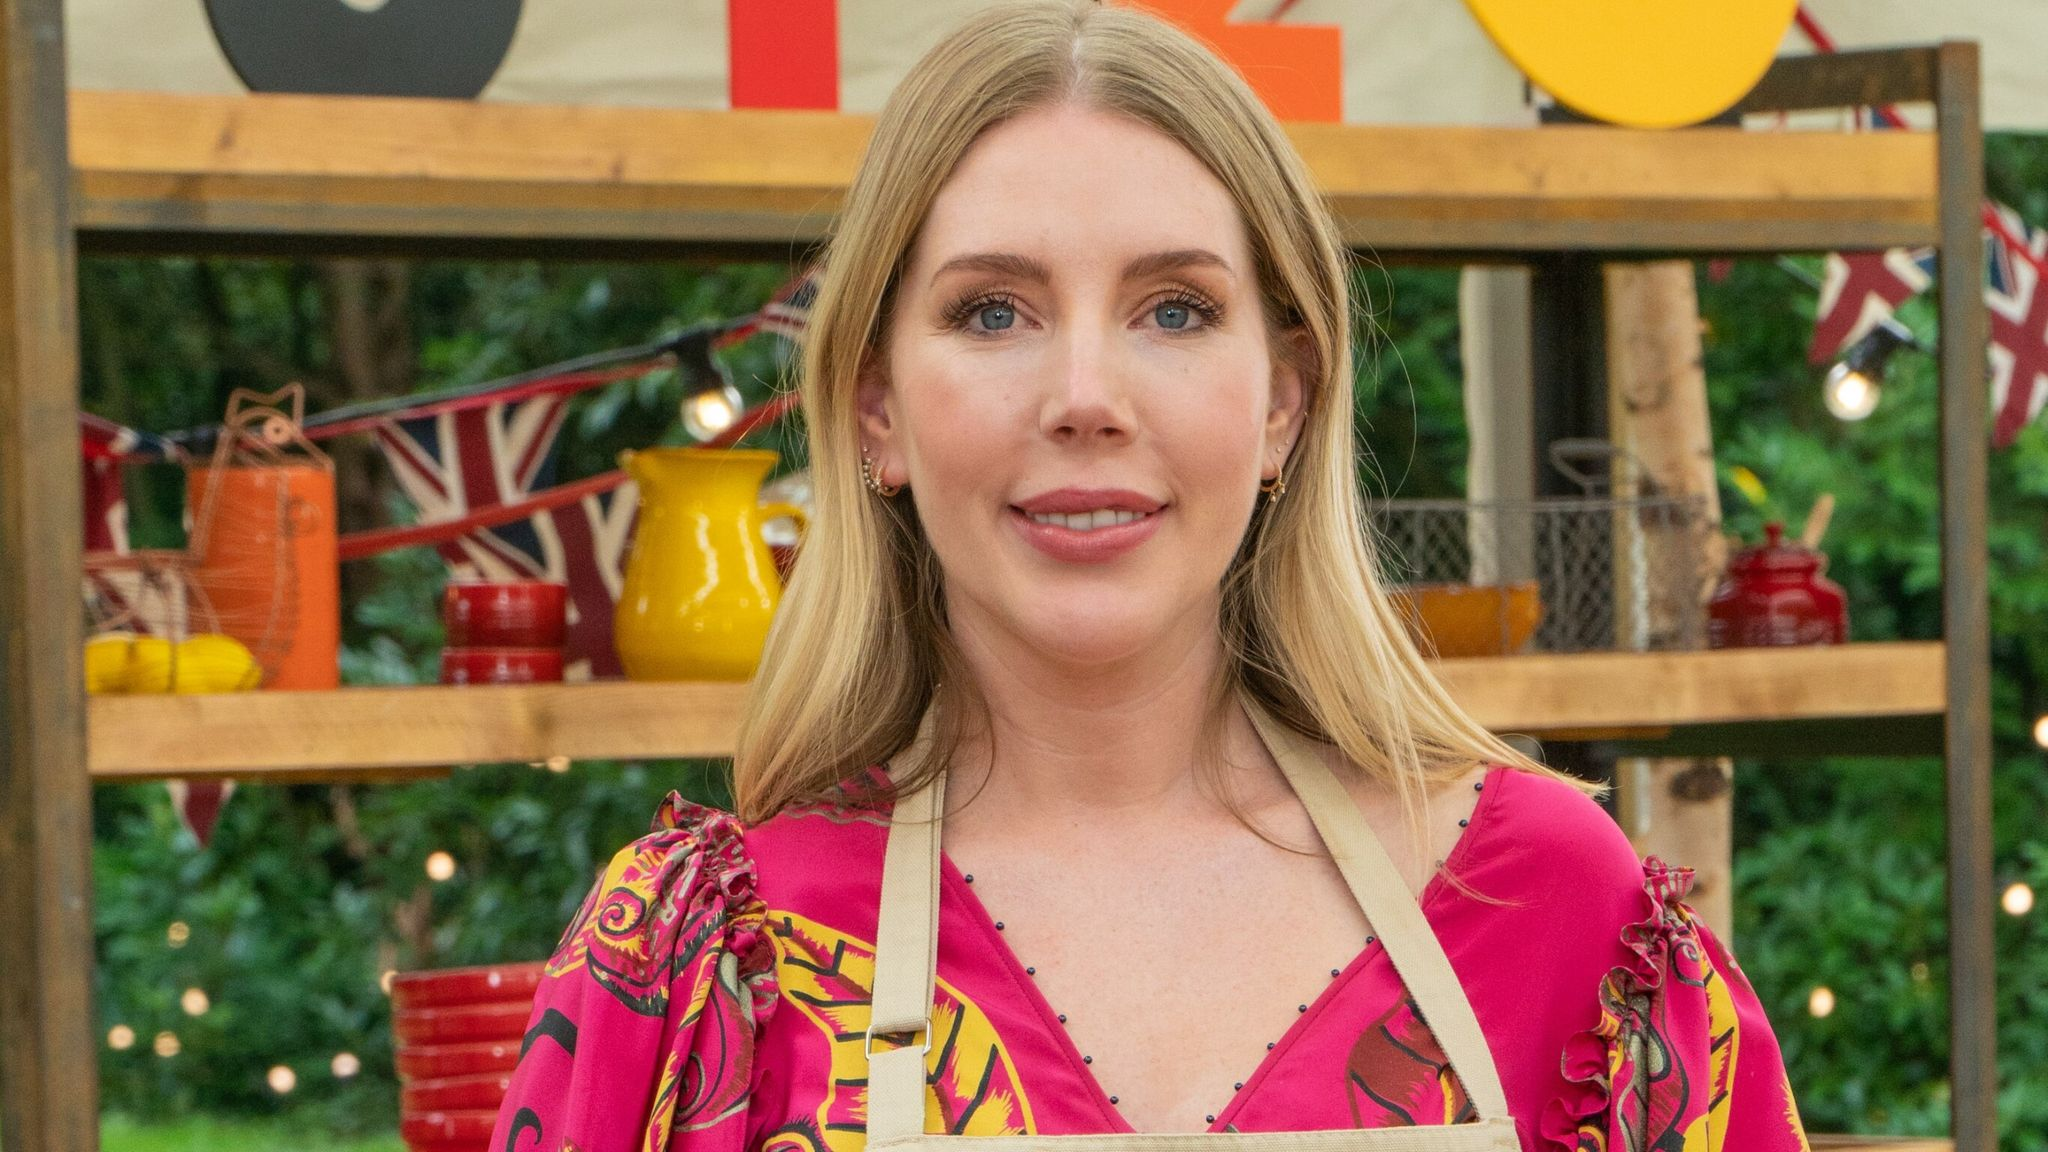 Katherine Ryan is taking part in The Great Celebrity Bake Off. Pic: Channel 4